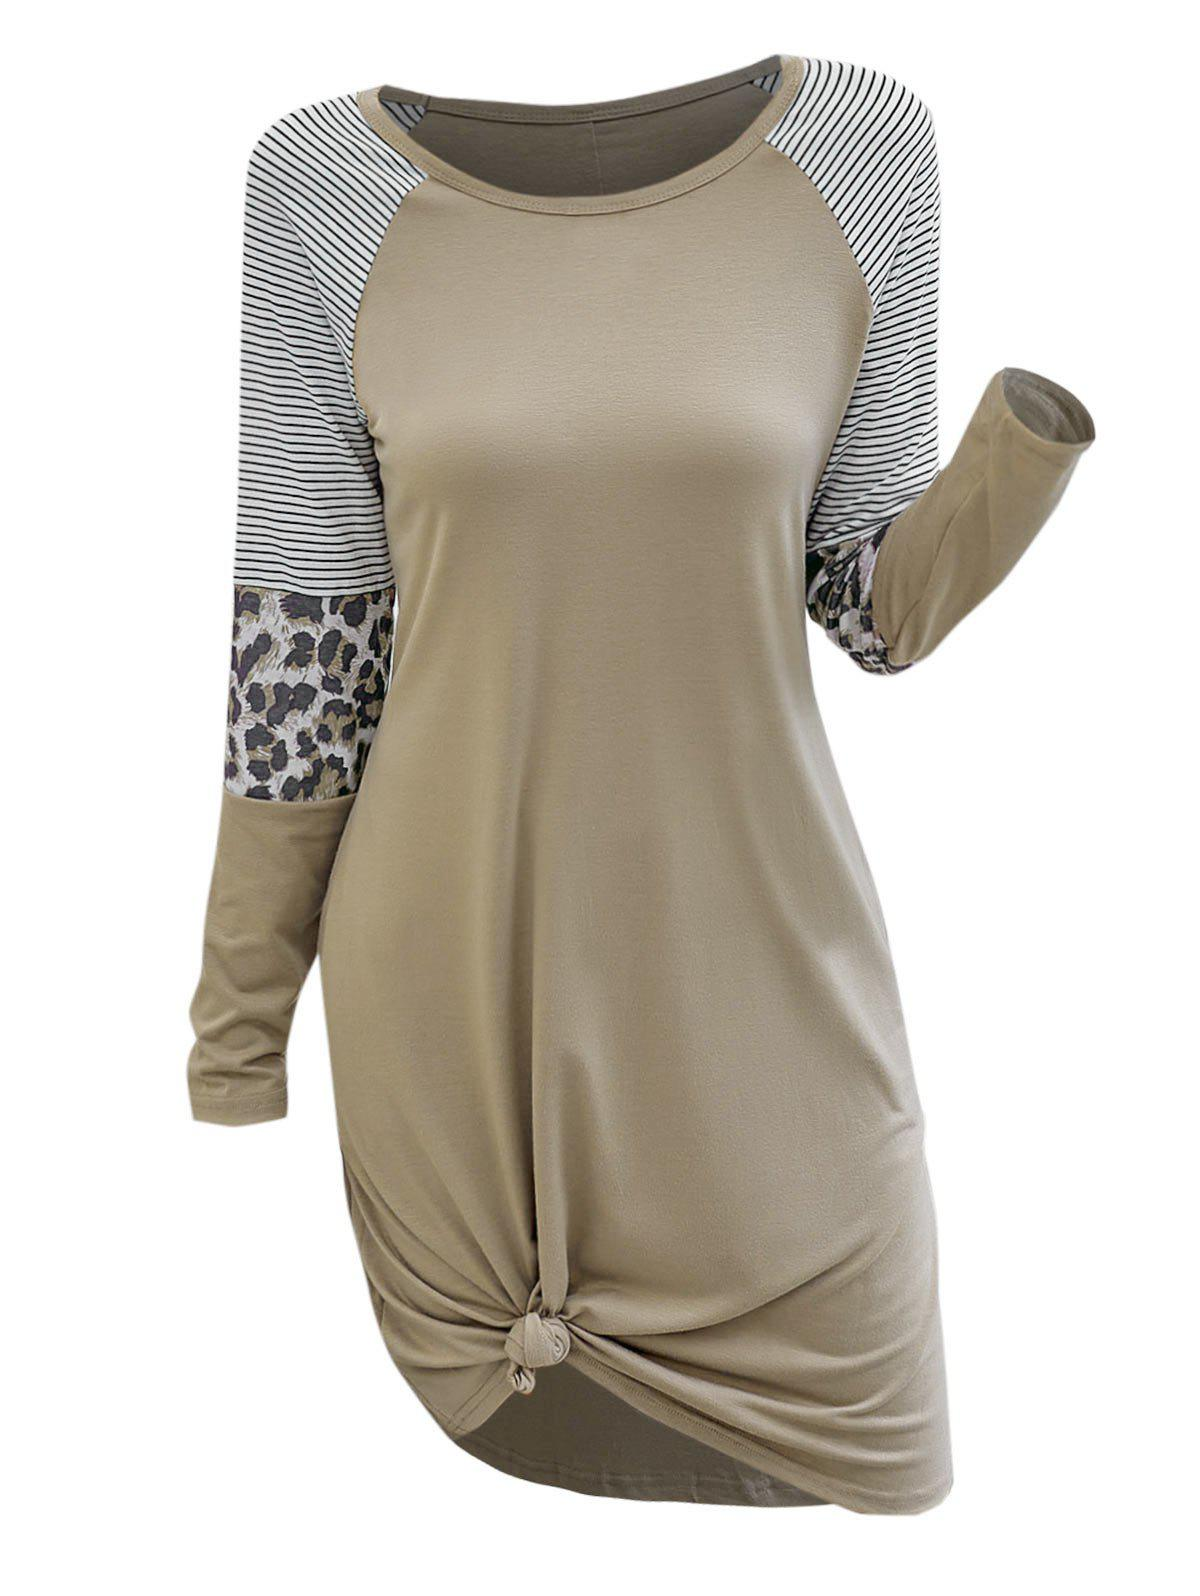 Casual Stripes Leopard Panel Tee Dress - LIGHT COFFEE L